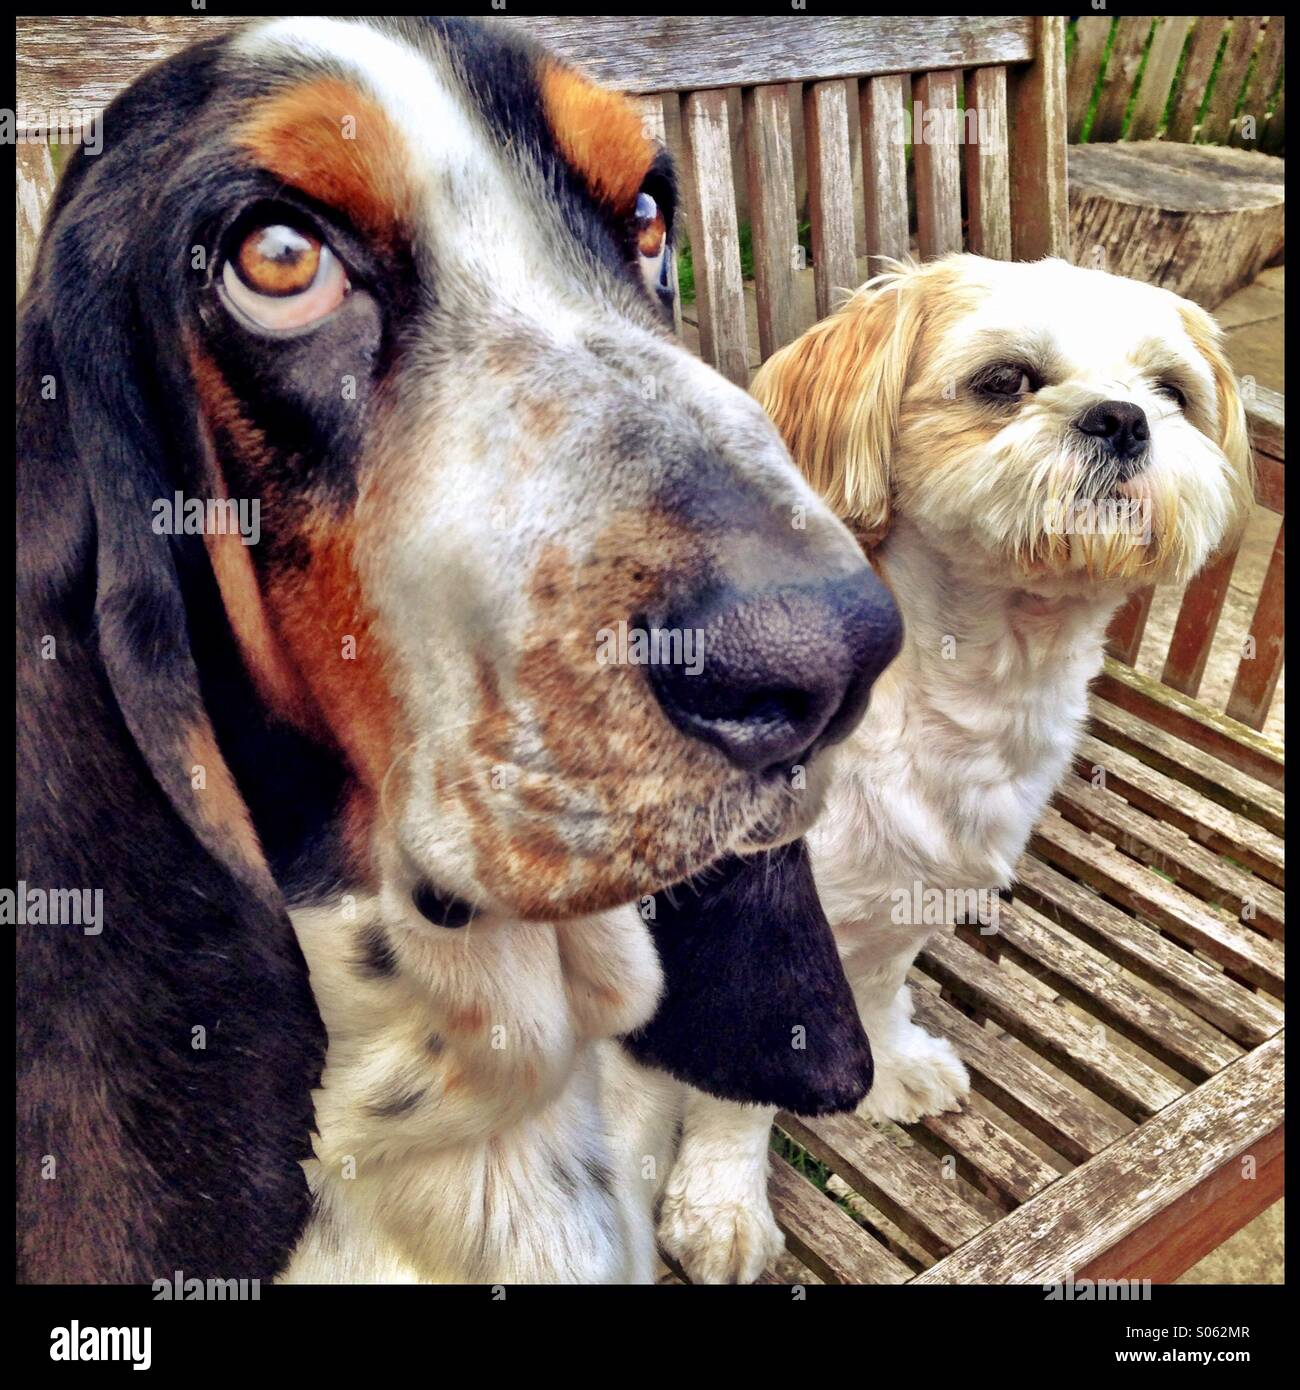 Close up of 2 dogs sat side by side on a bench - Stock Image